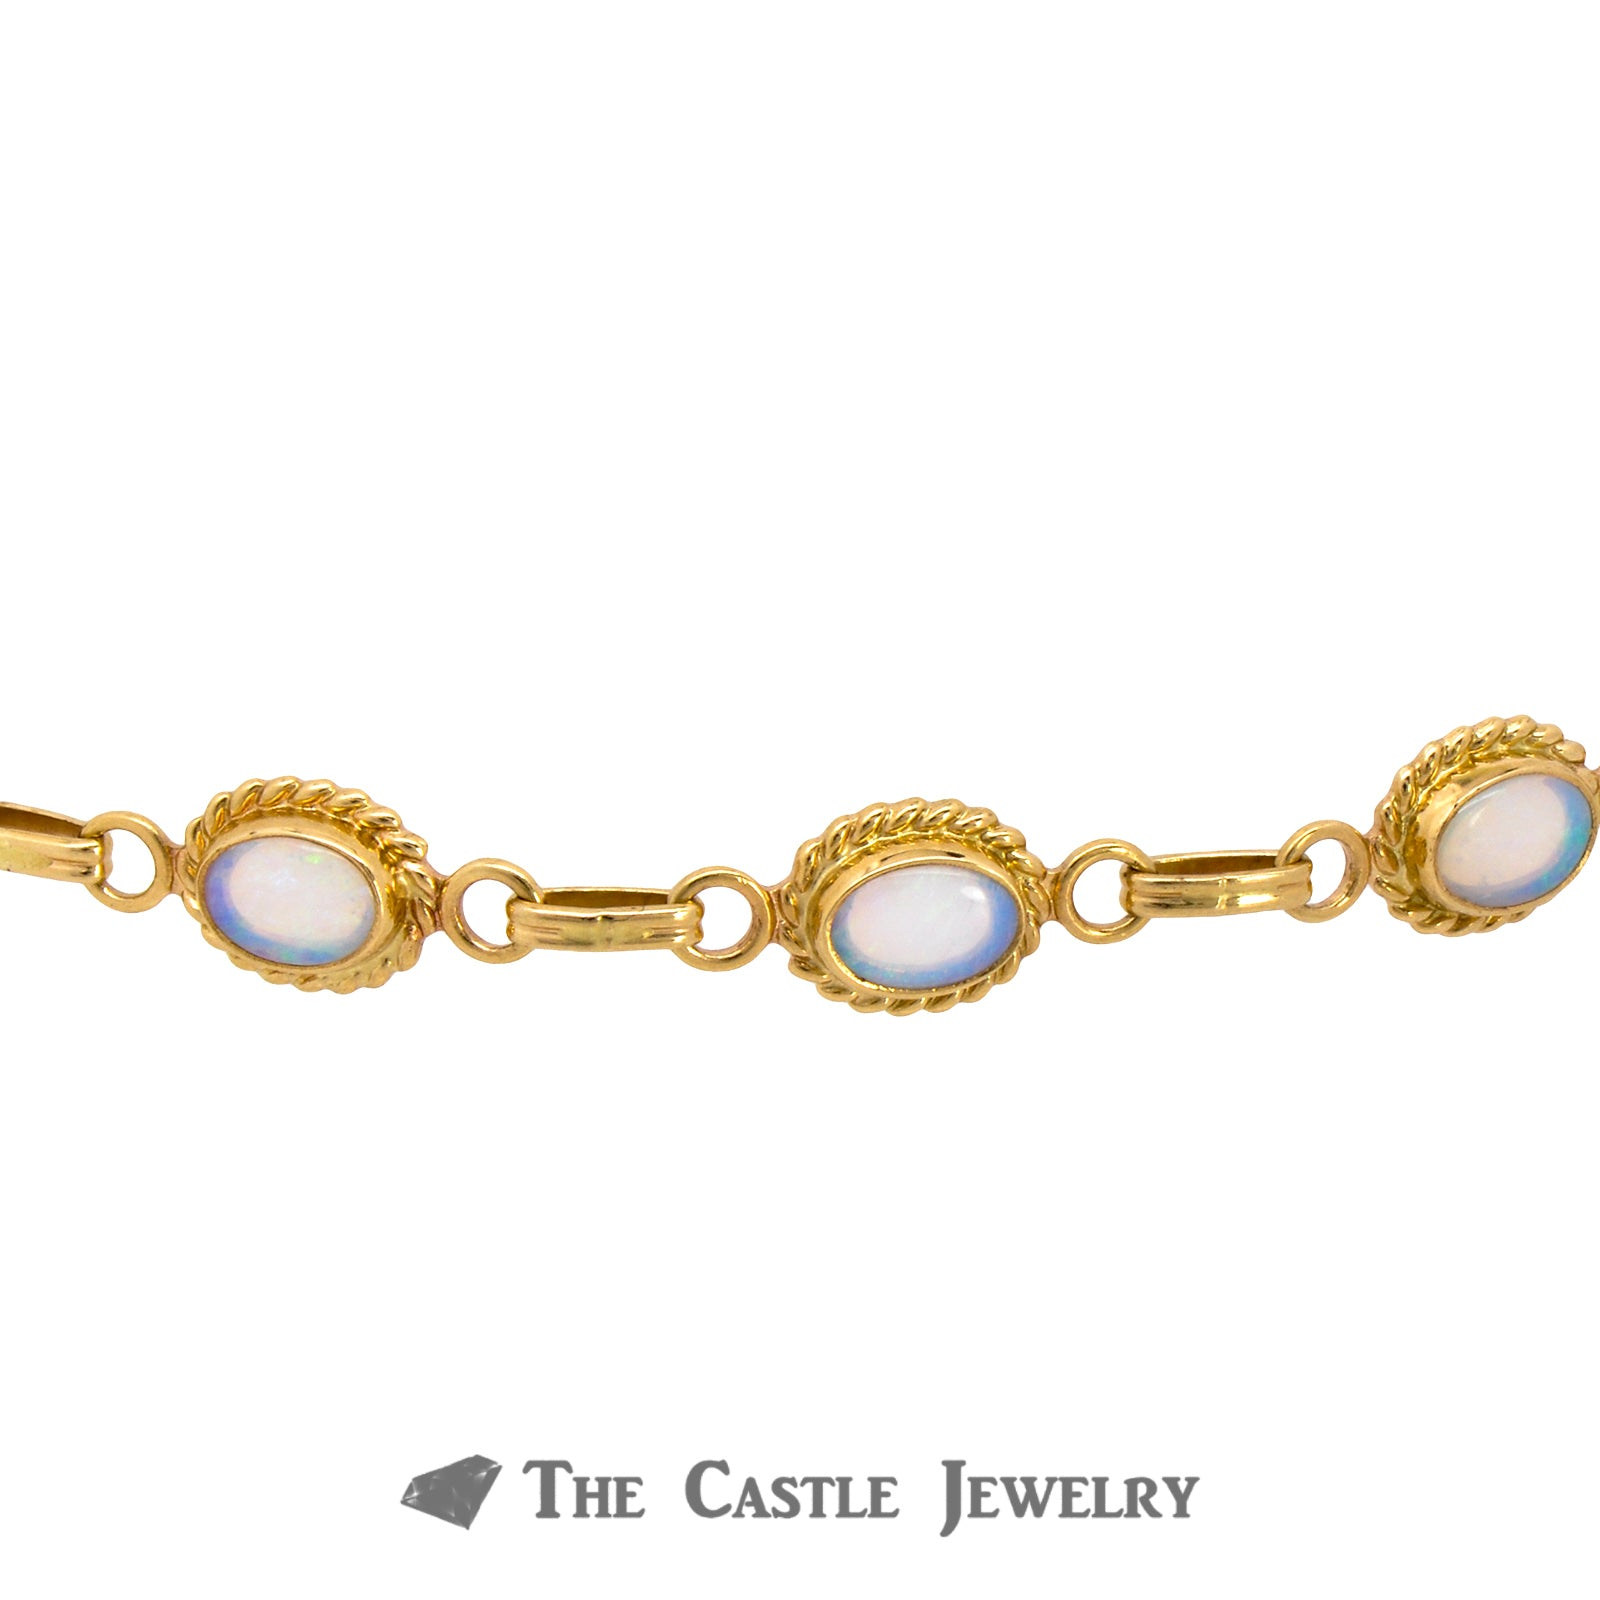 "7"" Oval Opal Bracelet with Rope Design Bezels Crafted in 14K Yellow Gold-2"